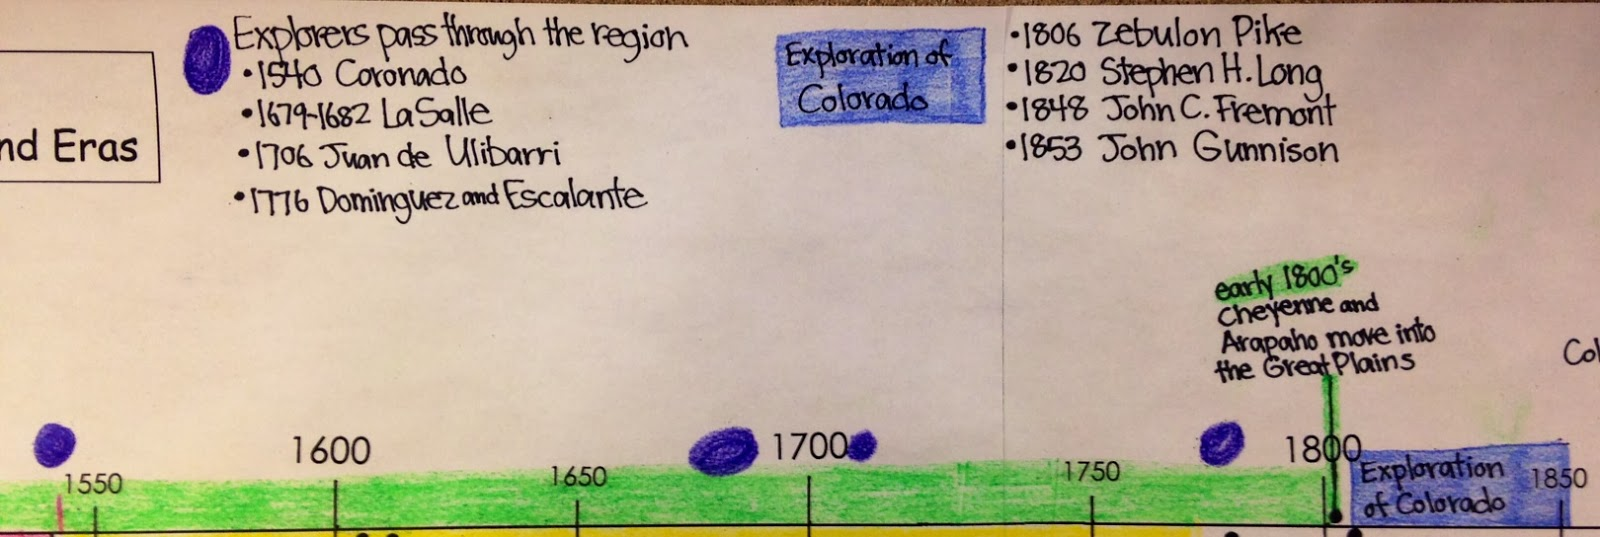 Concept Based Learning In Social Studies Colorado And Us History